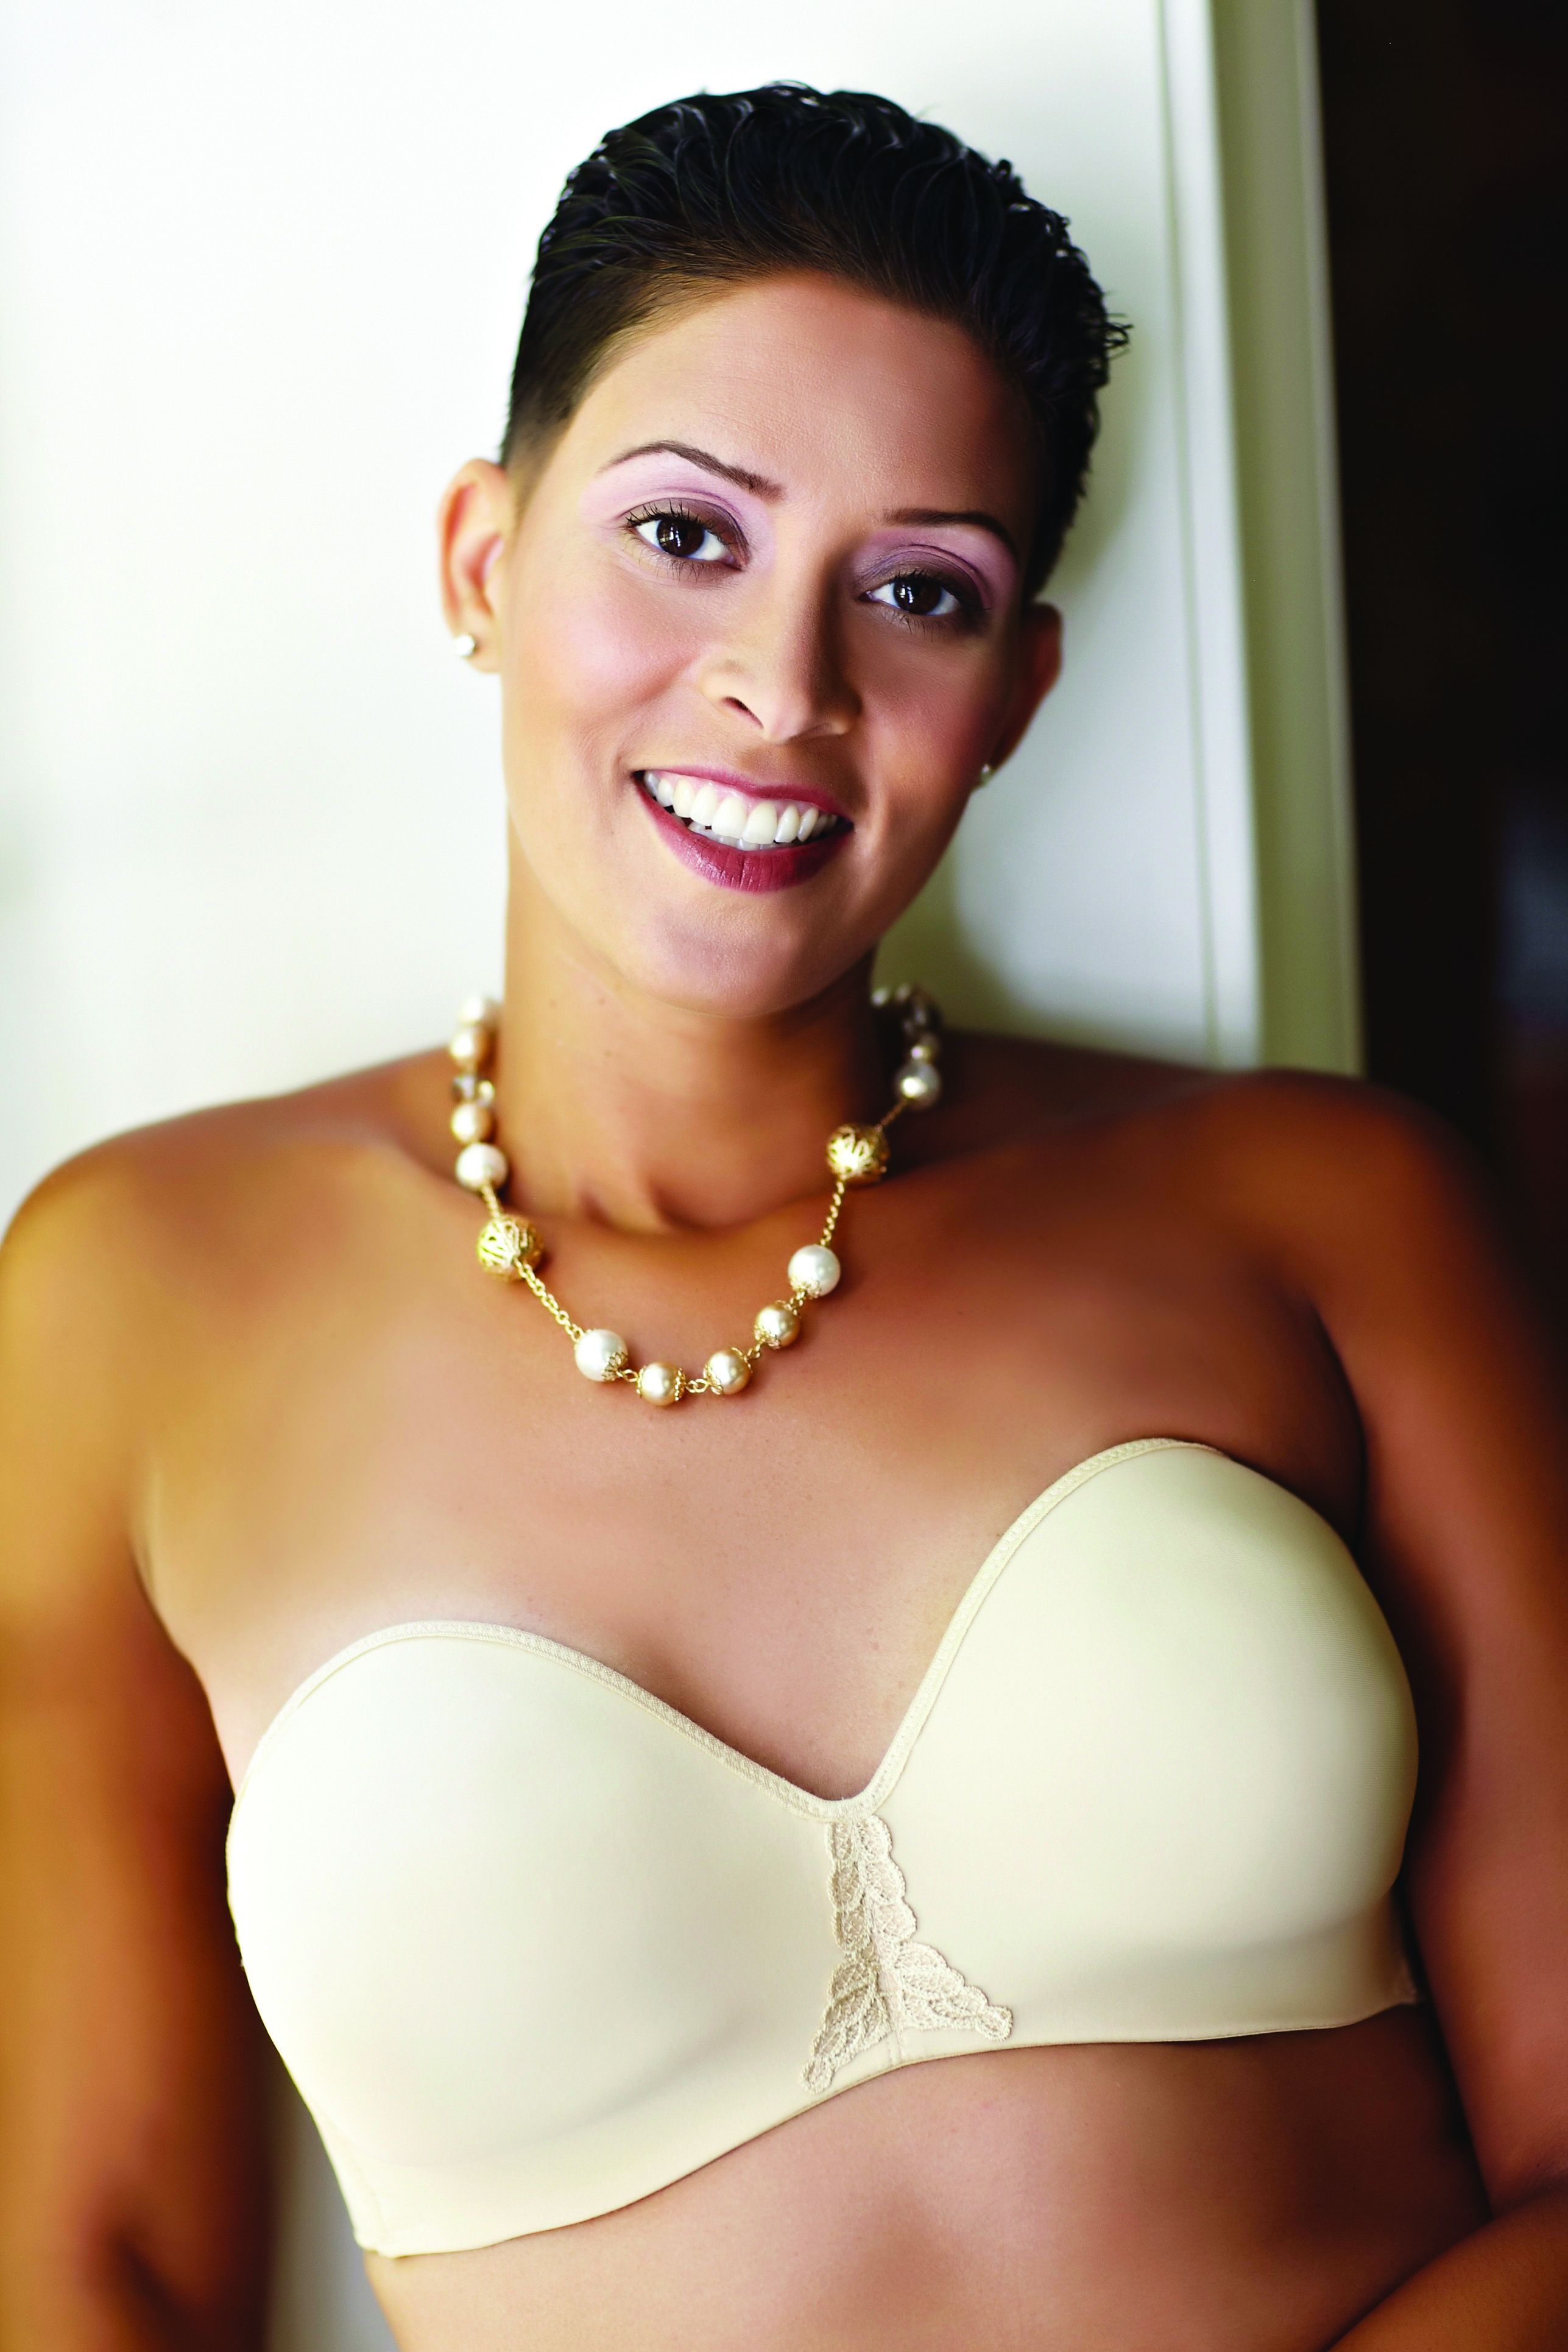 d2c91d6d26 Style ABC 112 - American Breast Care Seamless Strapless Mastectomy Bra